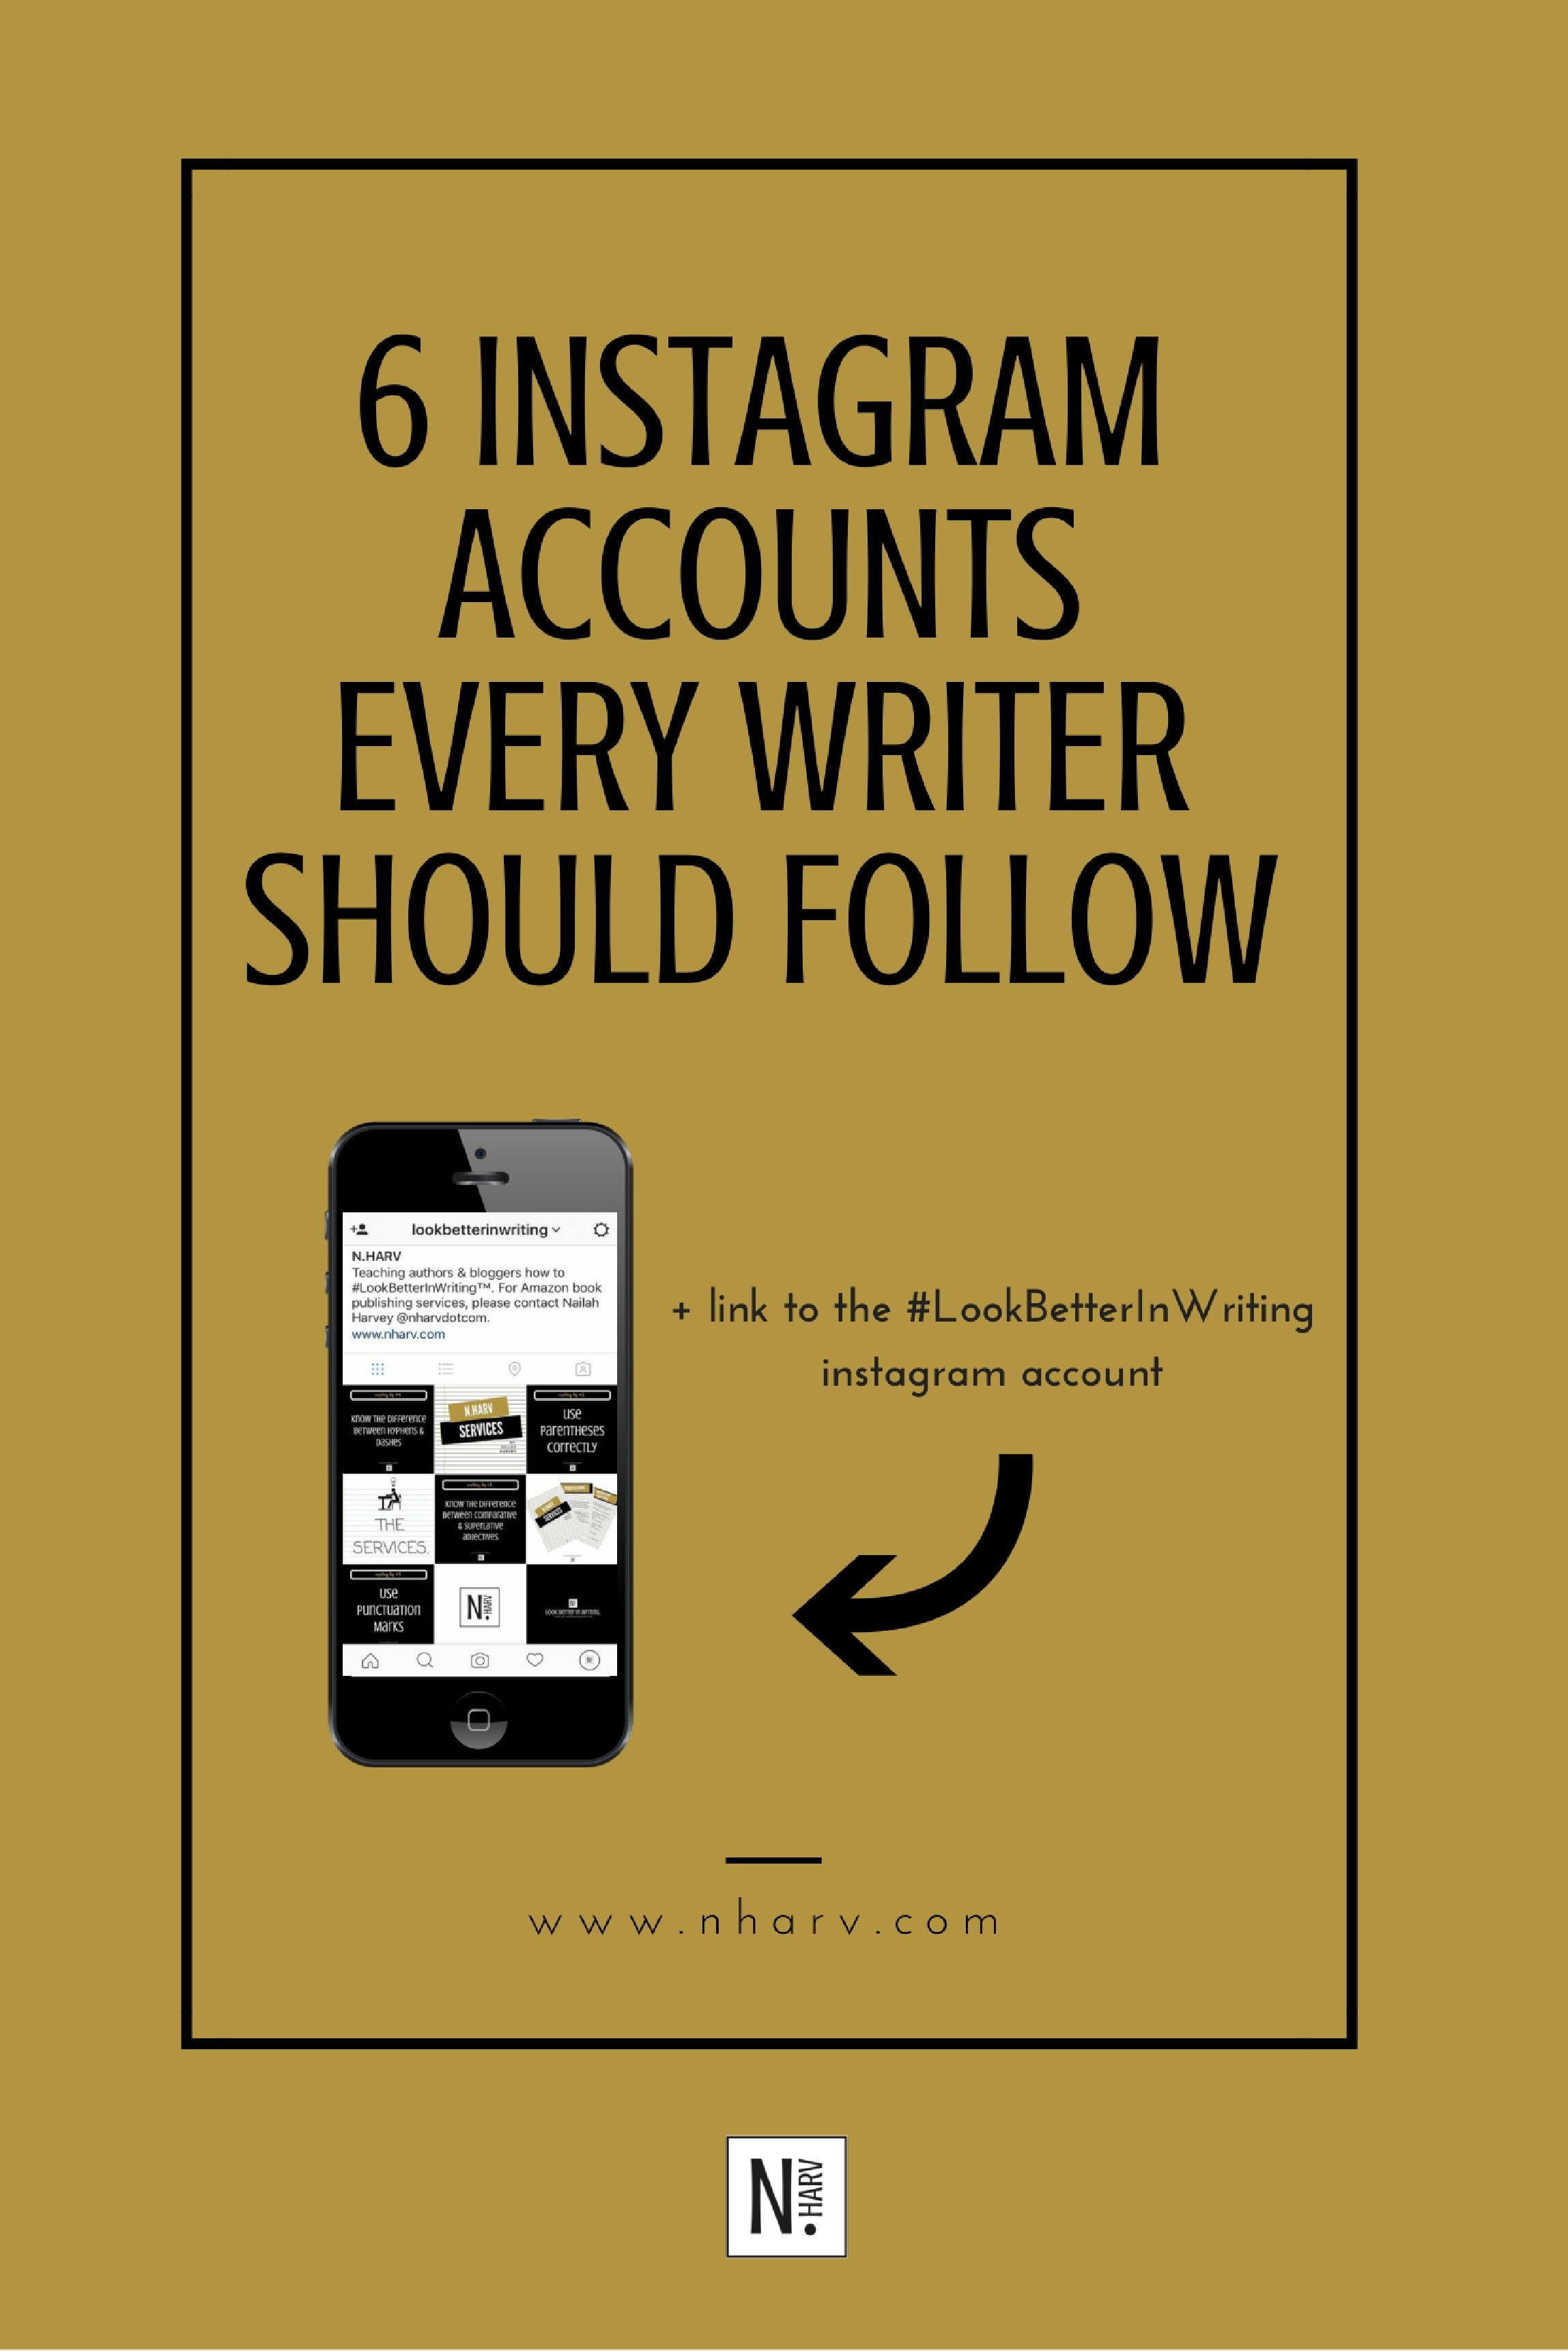 6 instagram accounts every writer should follow.